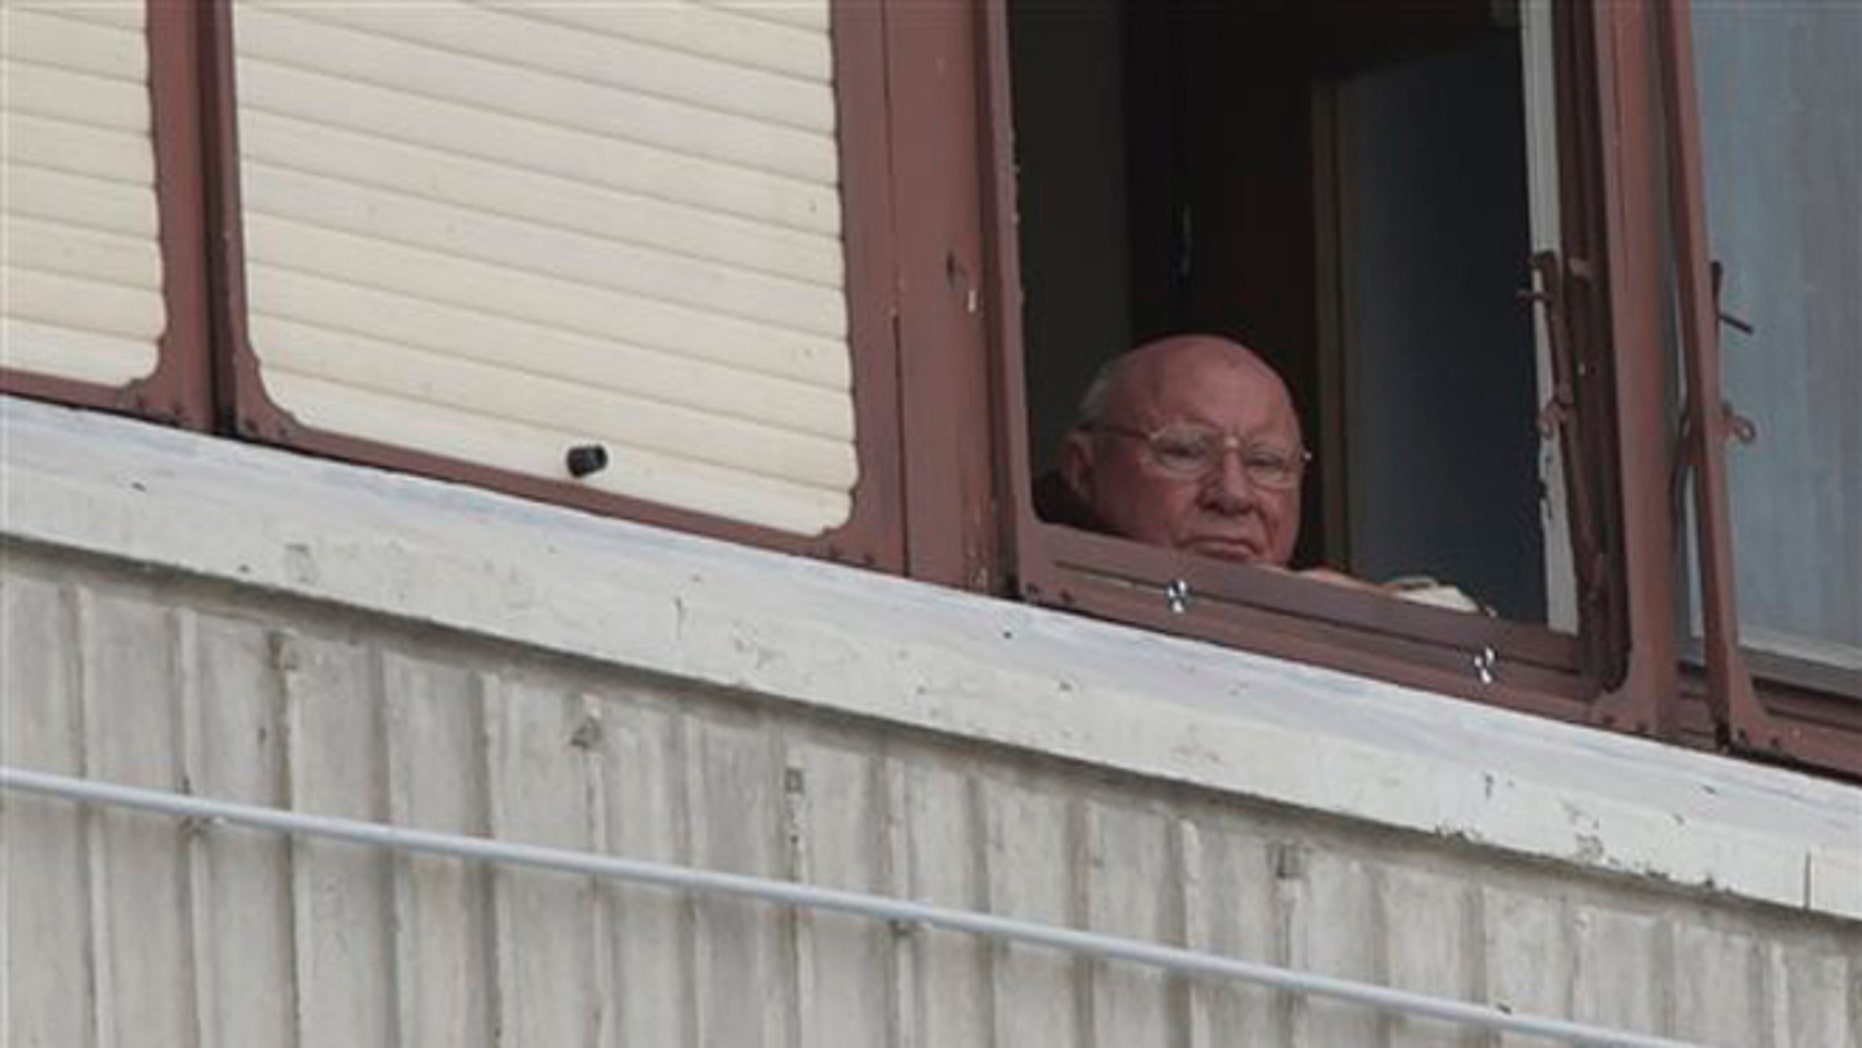 In this July 28, 2014, photo, Jakob Denzinger looks from his apartment window in Osijek, eastern Croatia. The suspected former Nazi prison guard at Auschwitz and other death camps, Jakob Denzinger, has died in his native Croatia at the age of 92.  (AP Photo/Darko Bandic)